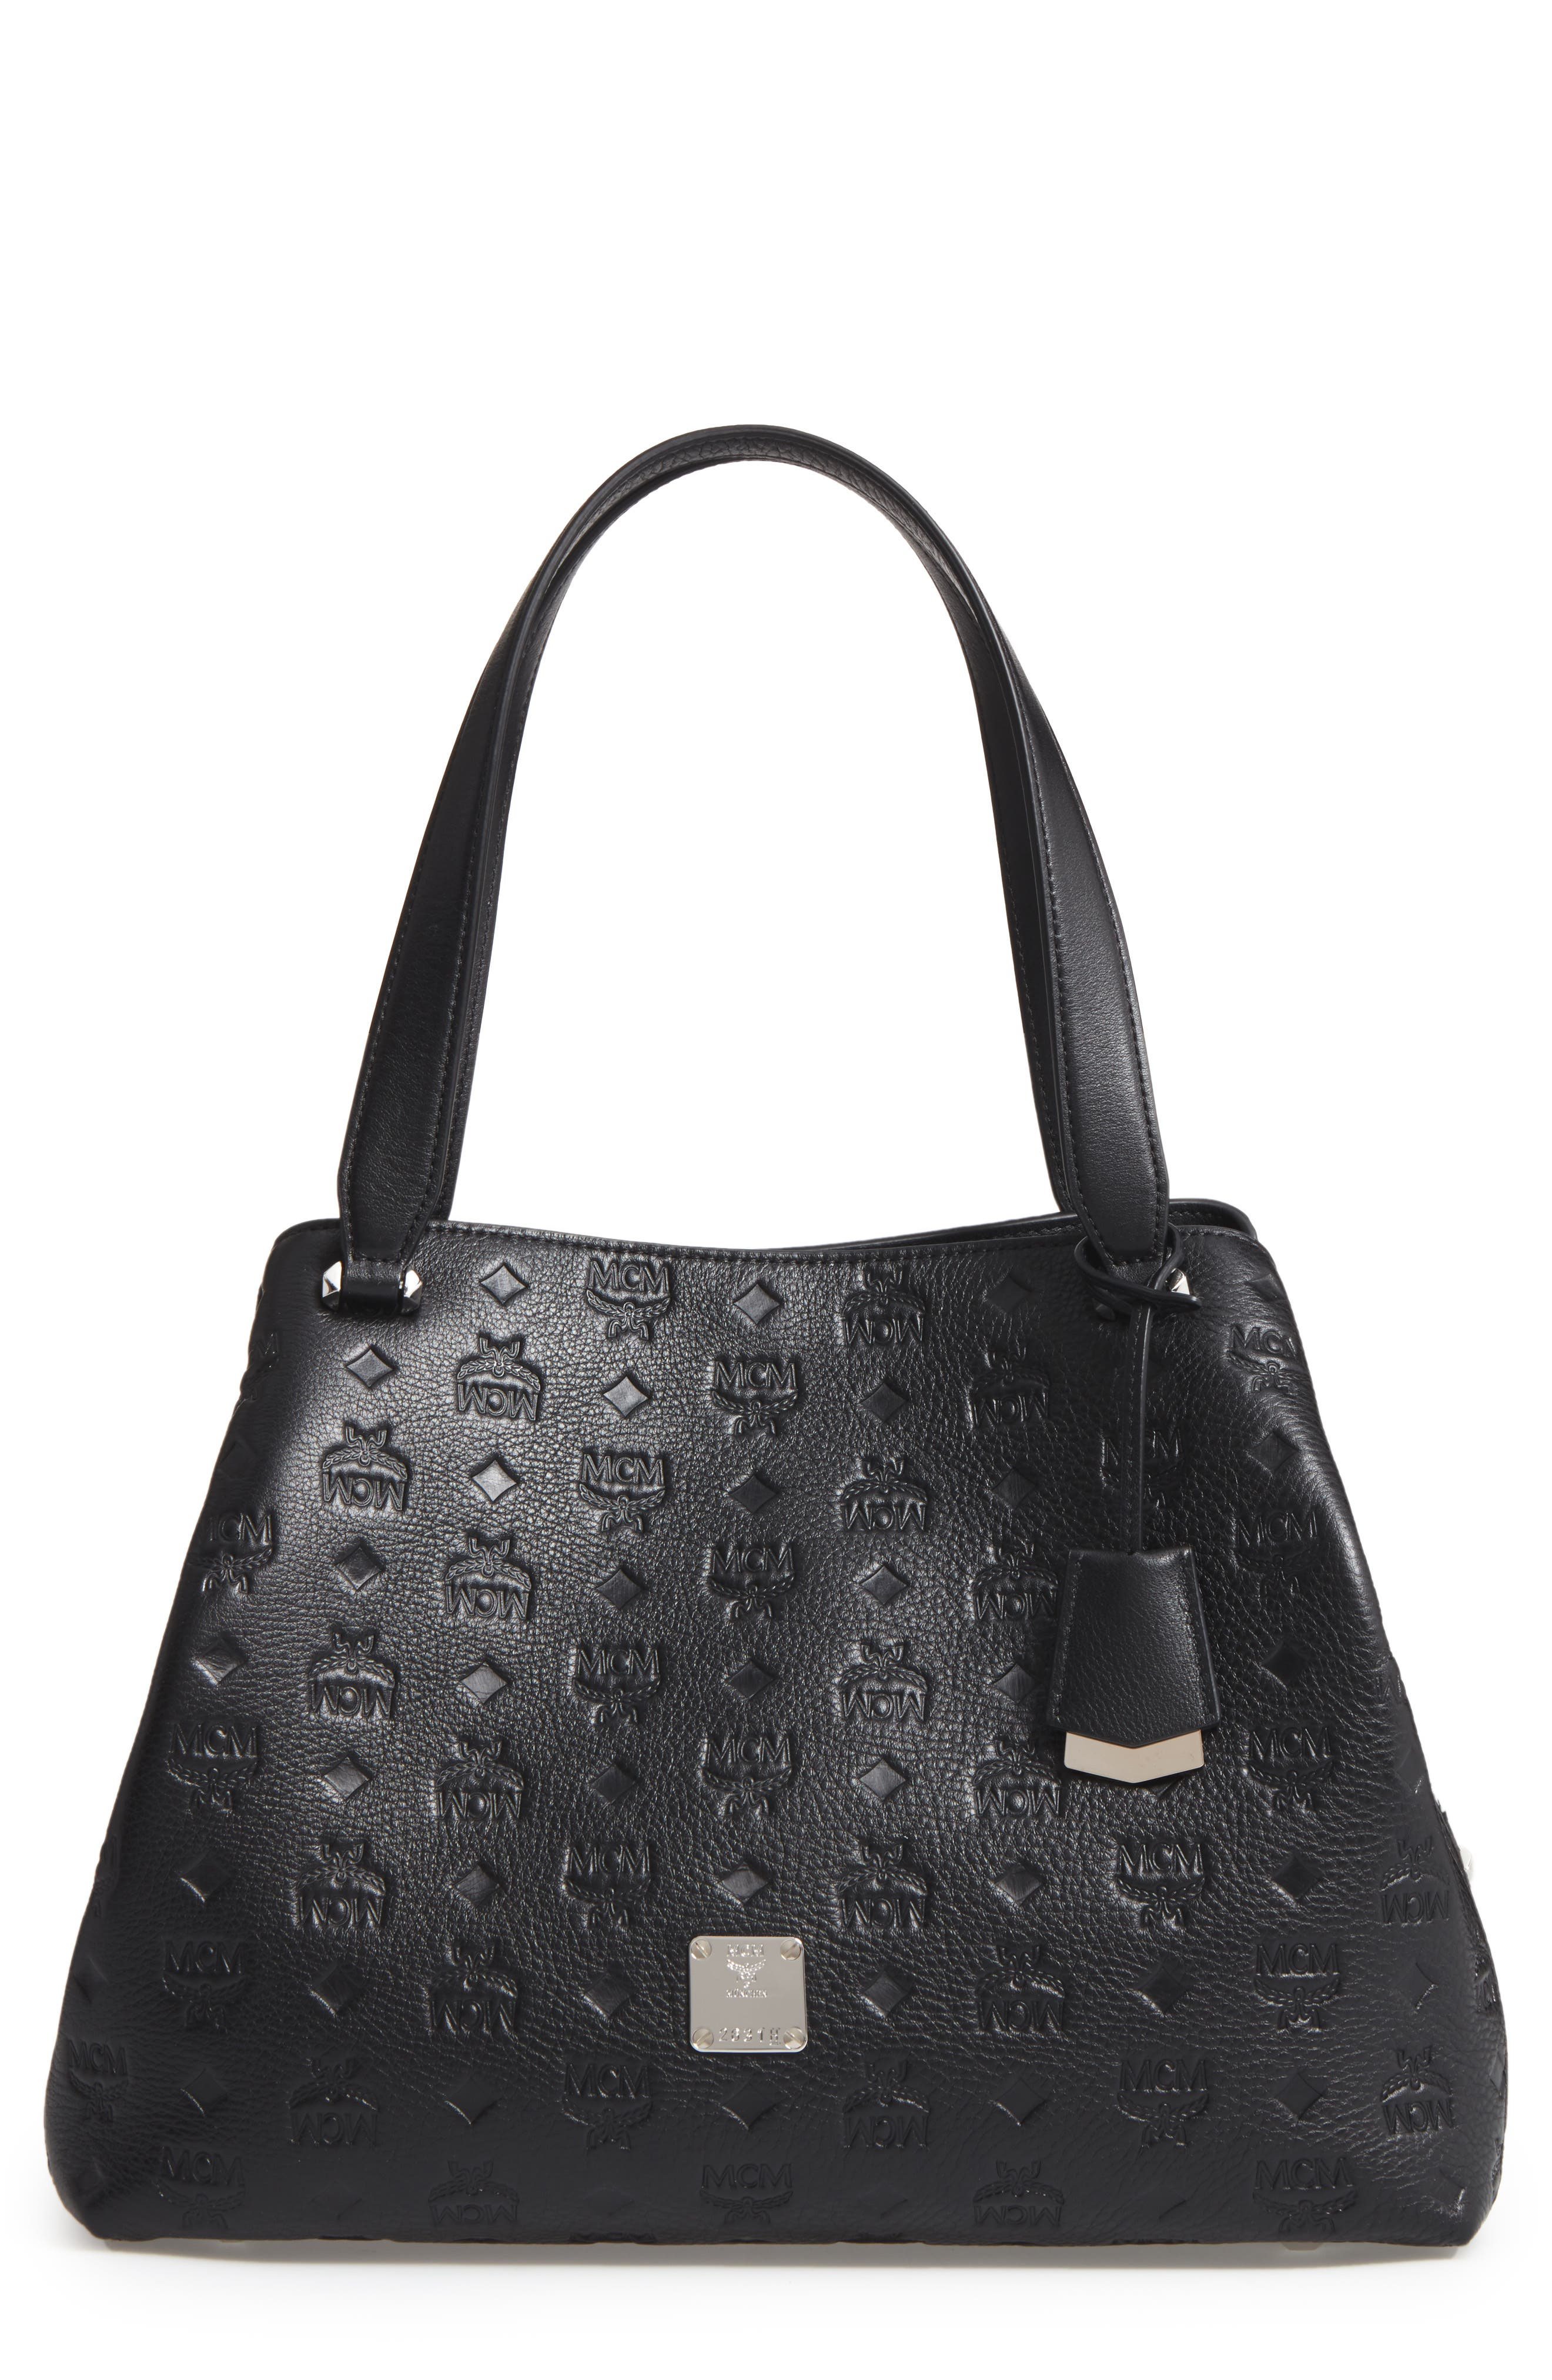 Signature Monogrammed Leather Handbag,                         Main,                         color, Black